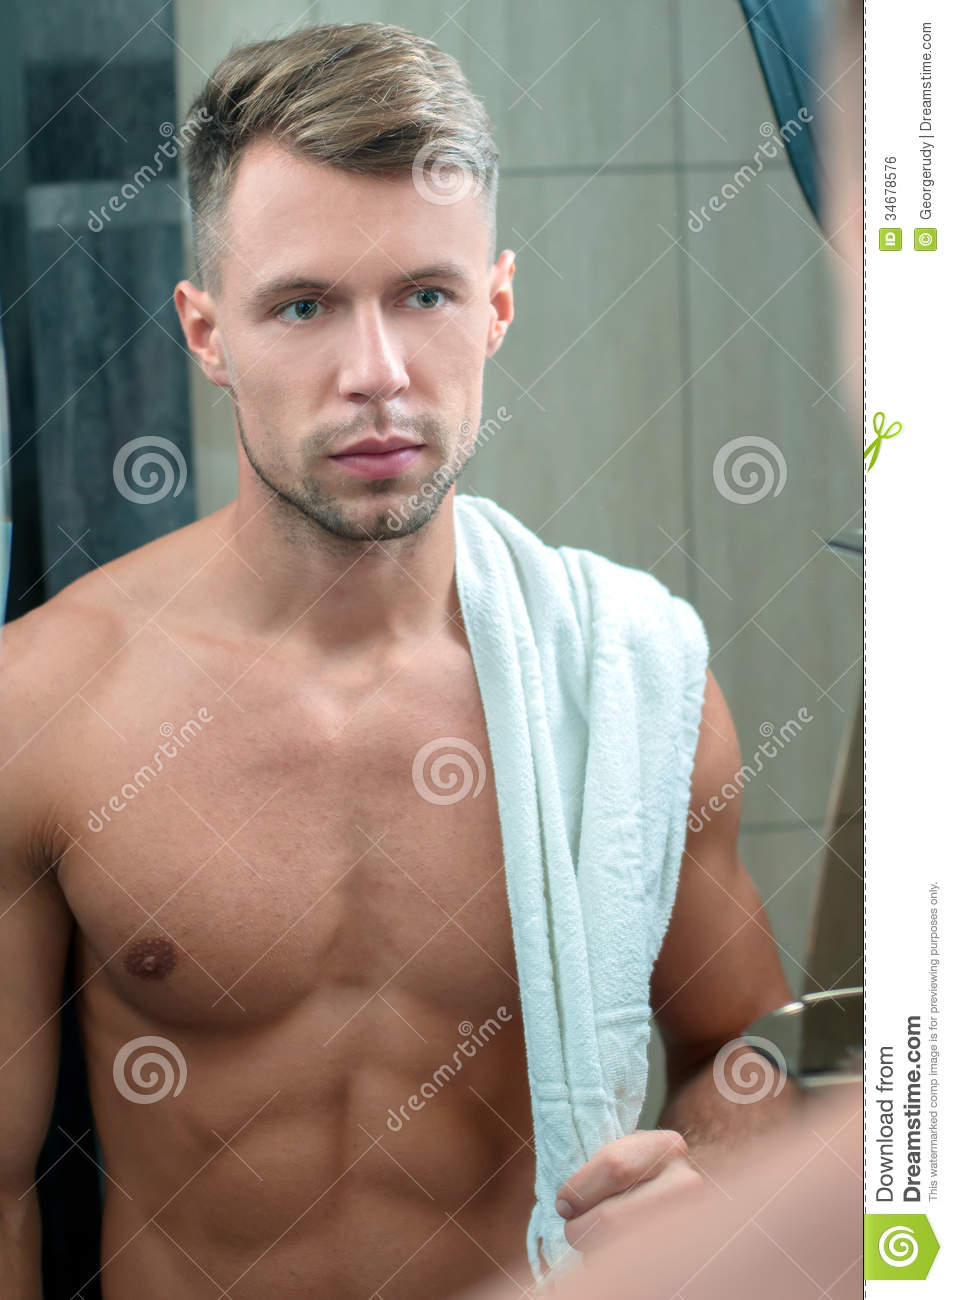 Man in bathroom royalty free stock image image 34678576 for Men in bathrooms